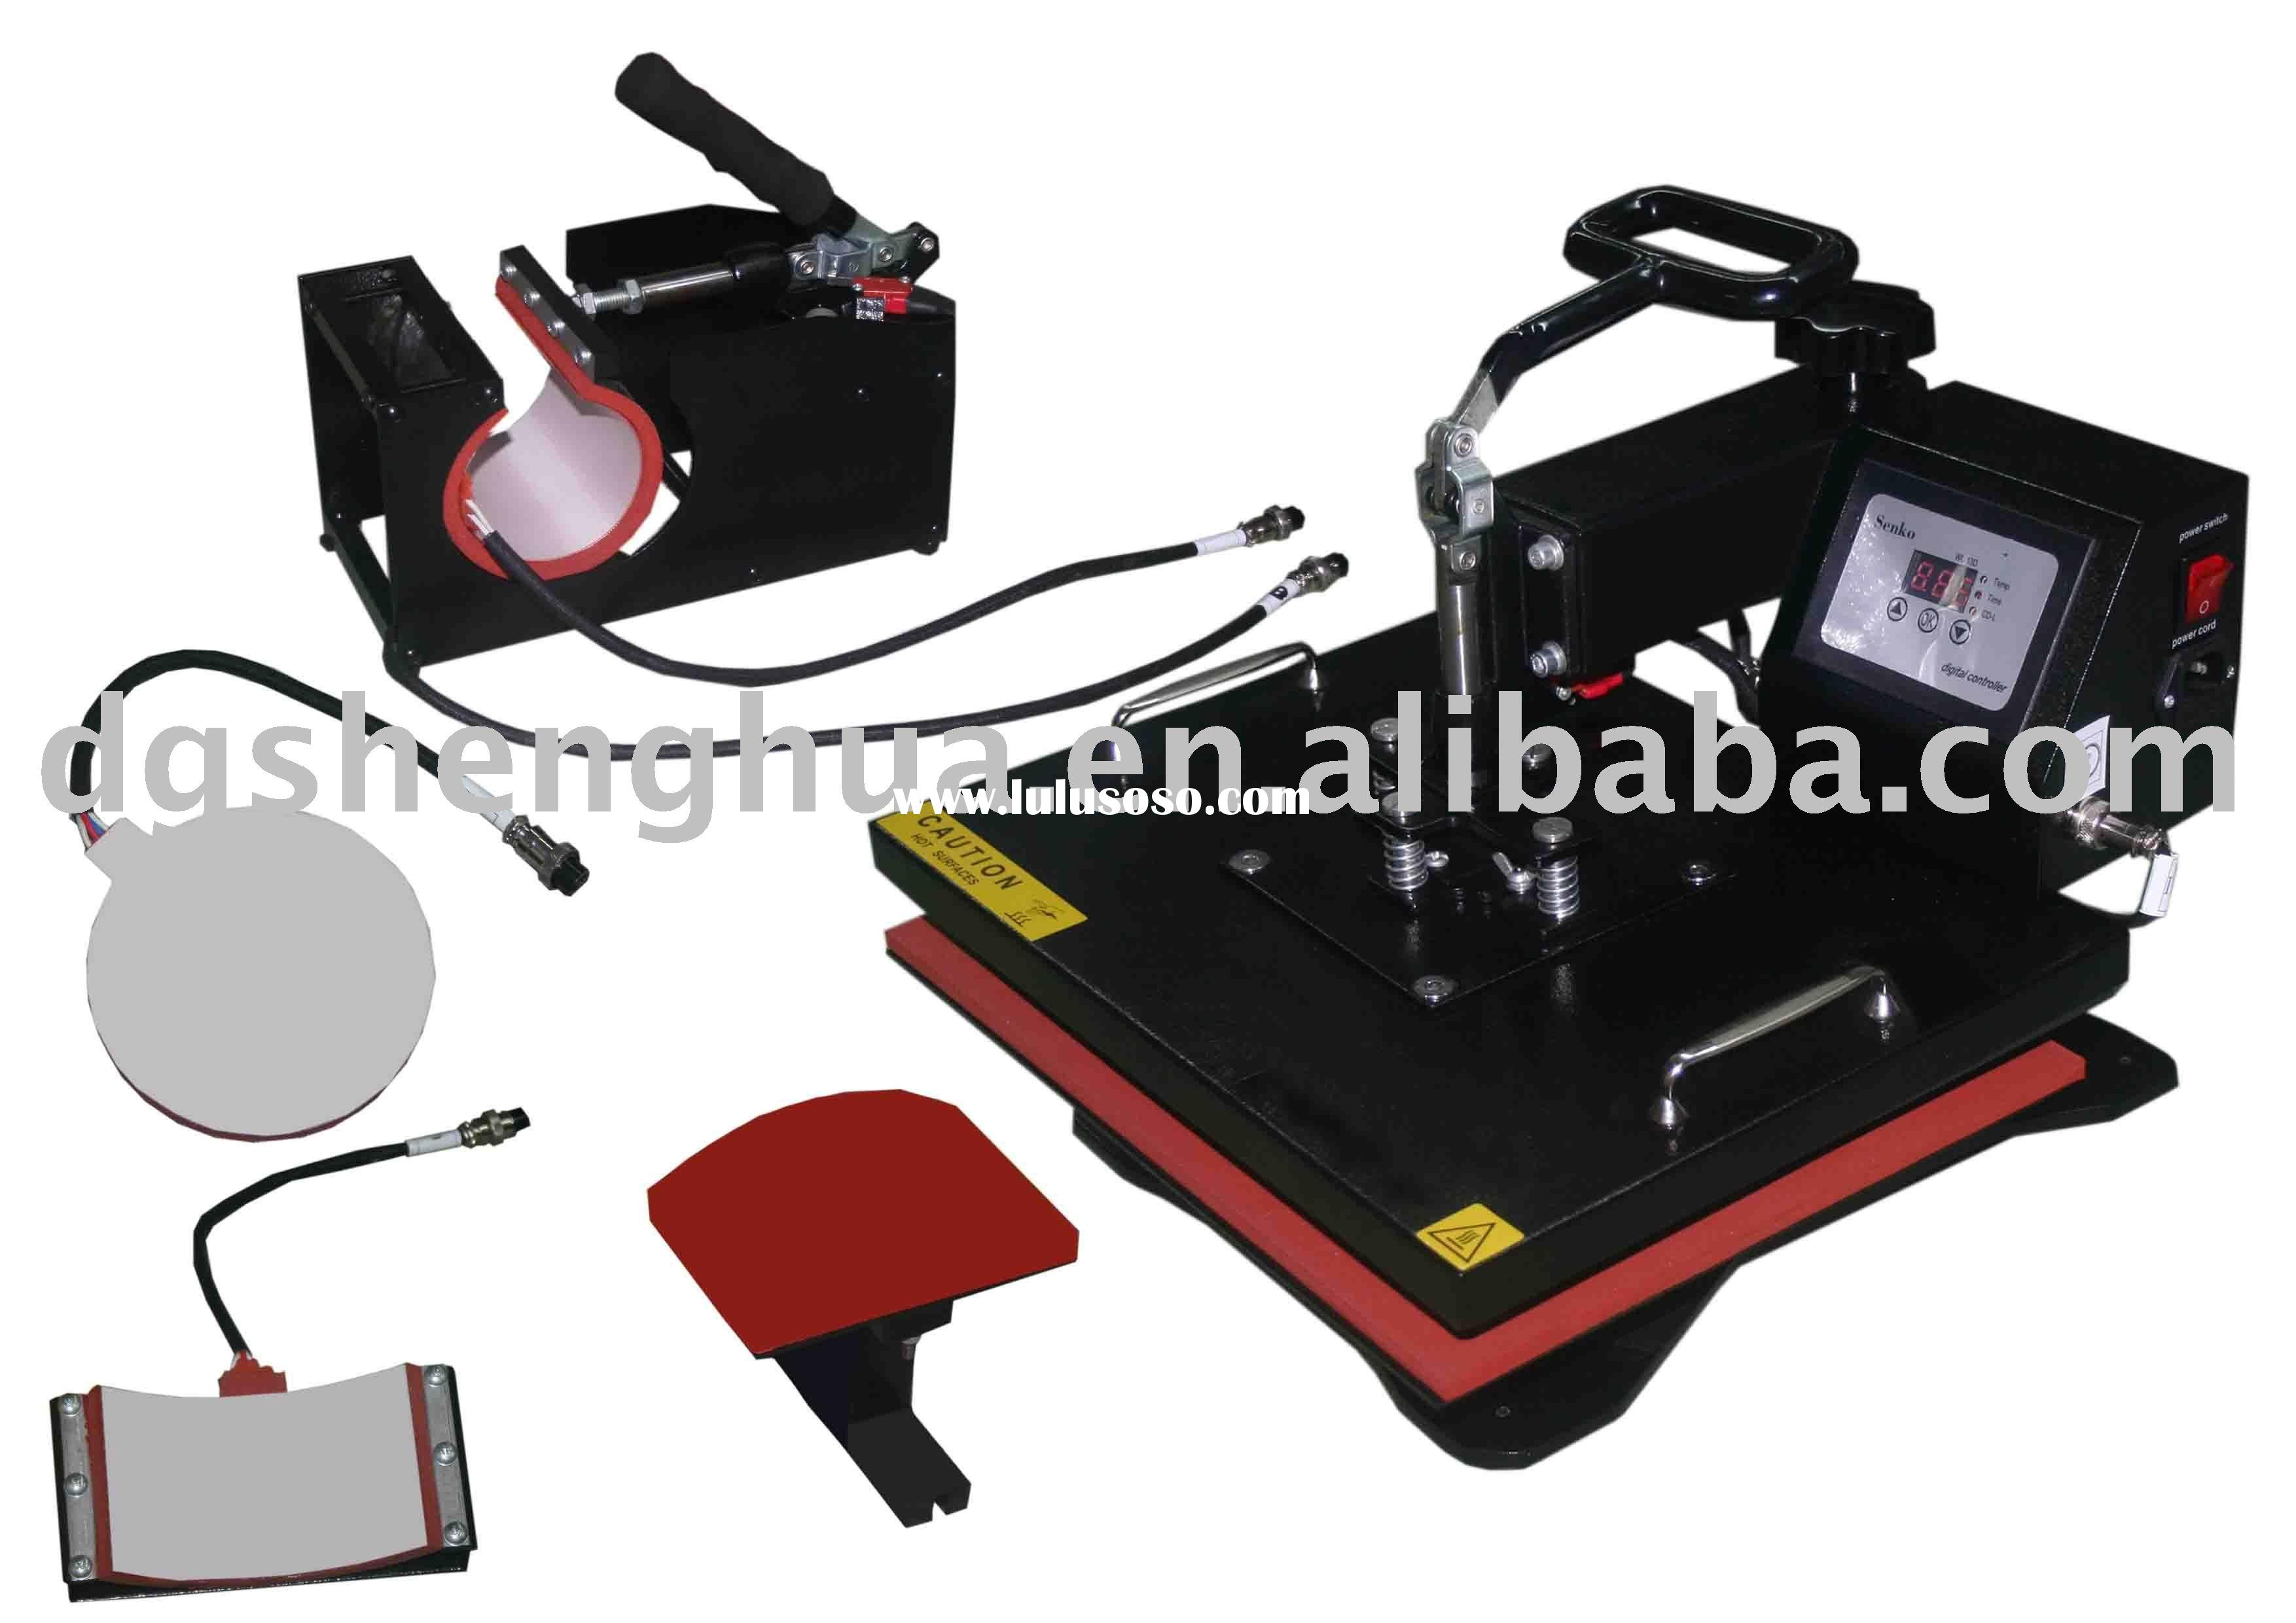 Combo 6 in 1 heat press machine,Multifunction heat transfer machine